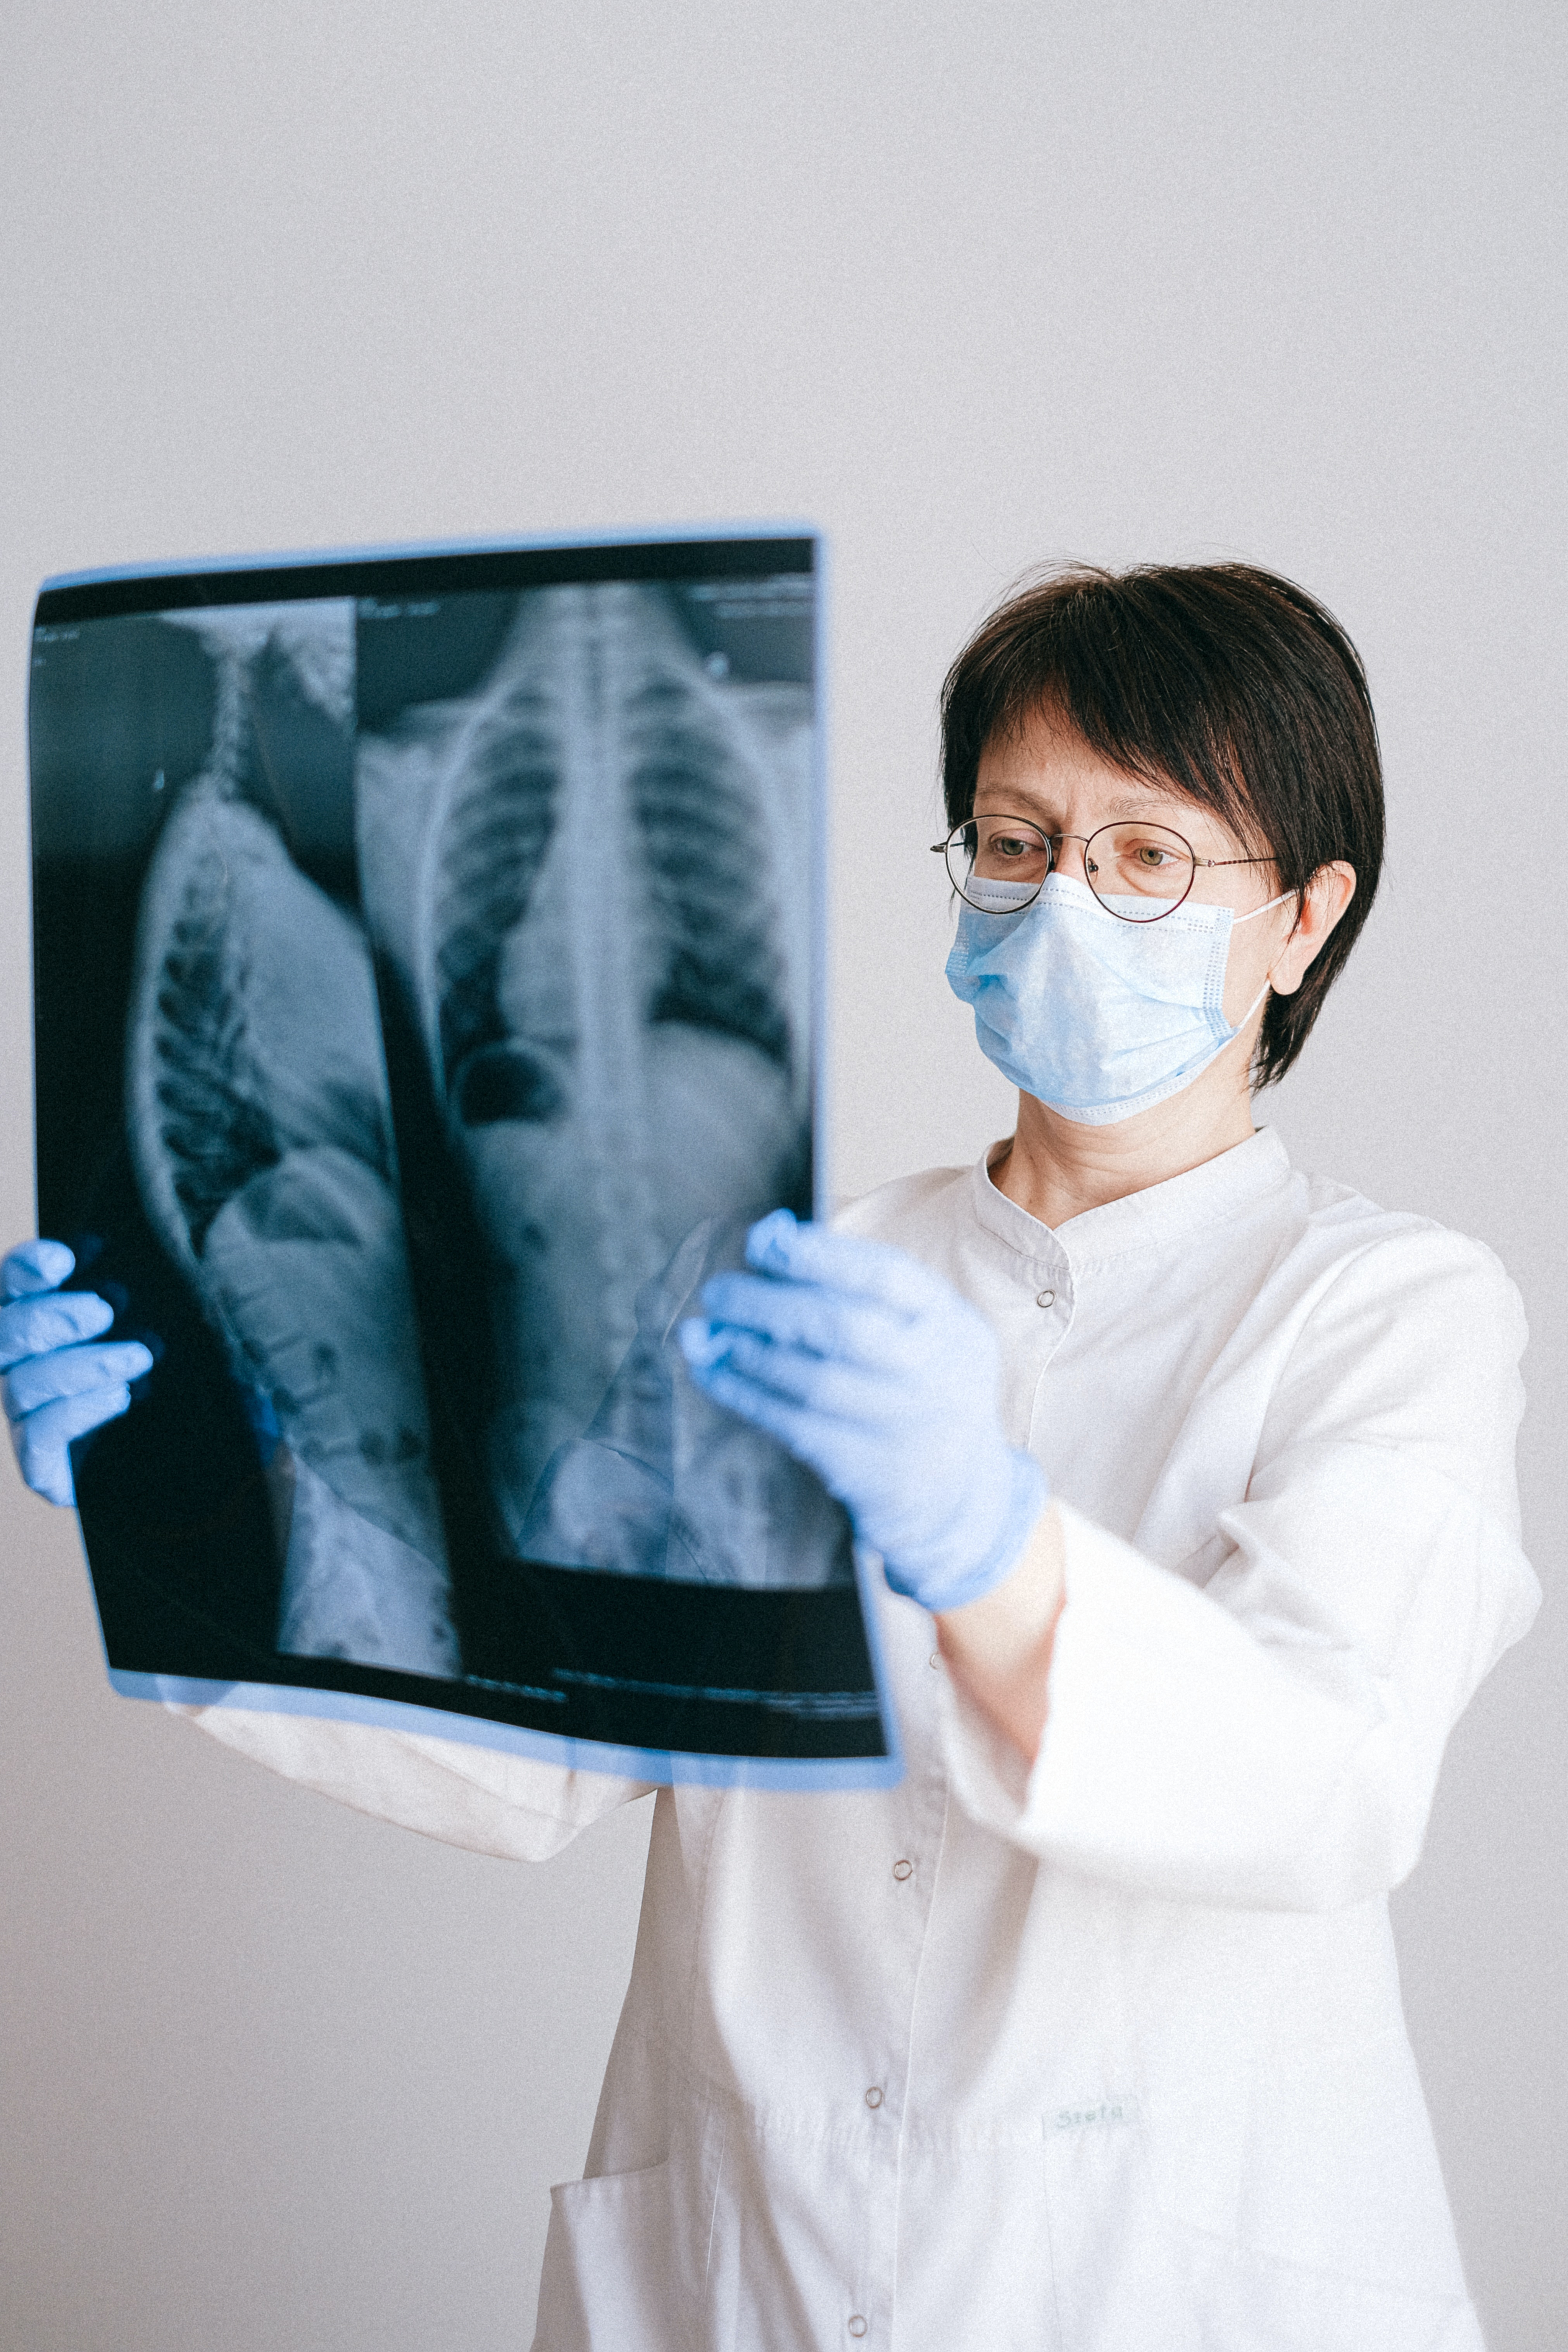 Do you have COPD? You could qualify for disability